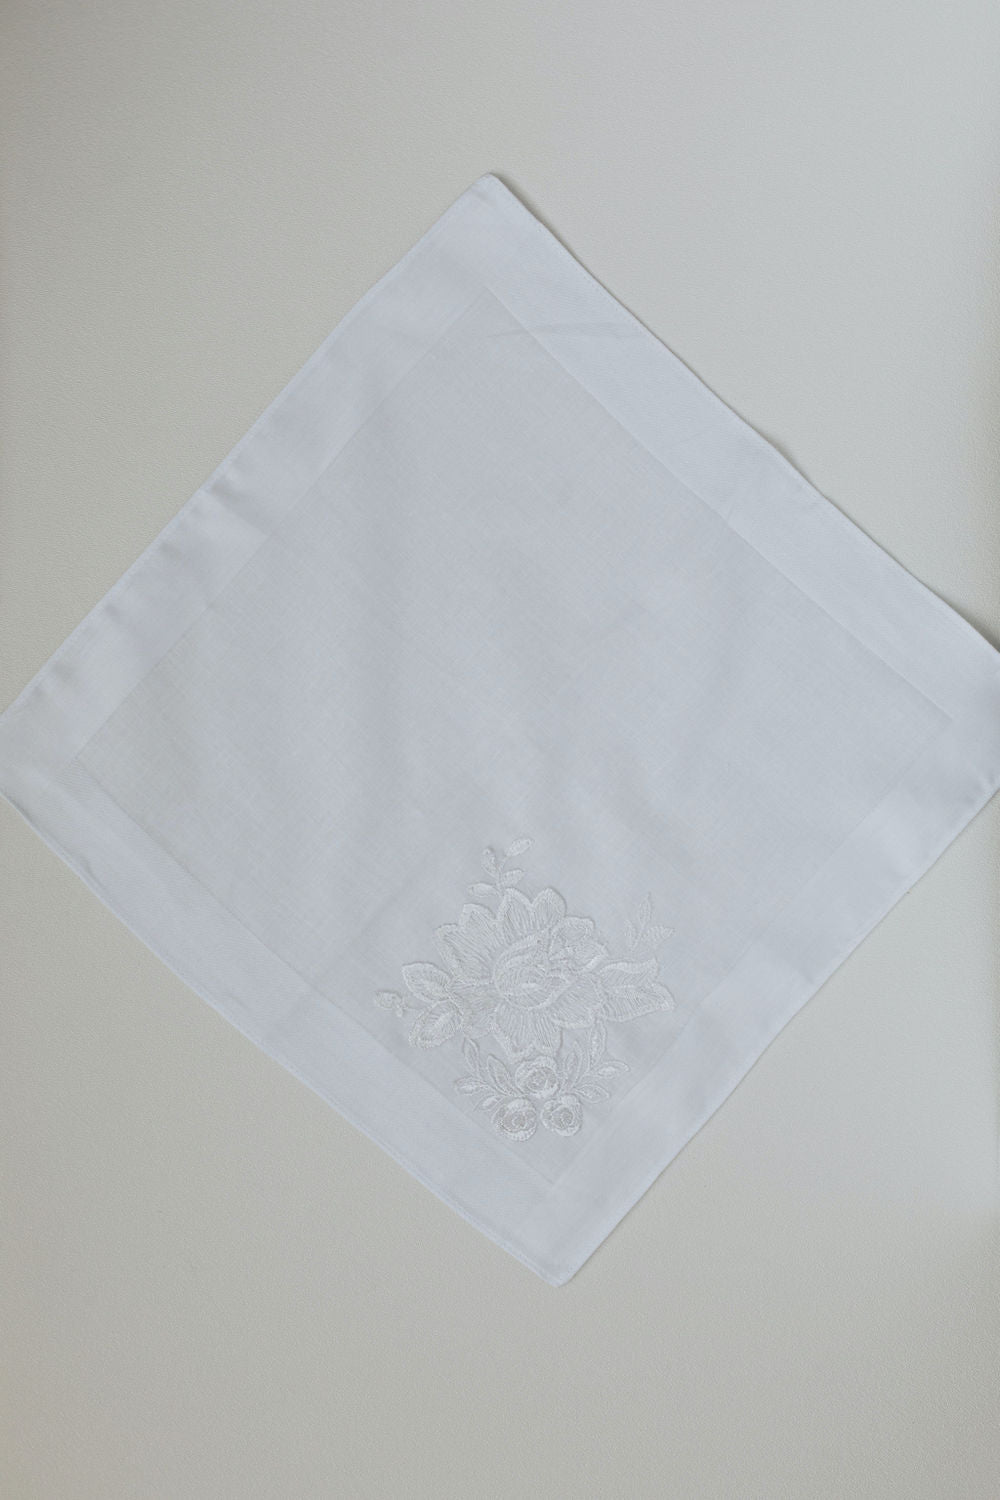 handkerchief made with lace from mothers wedding dress by The-Garter-Girl